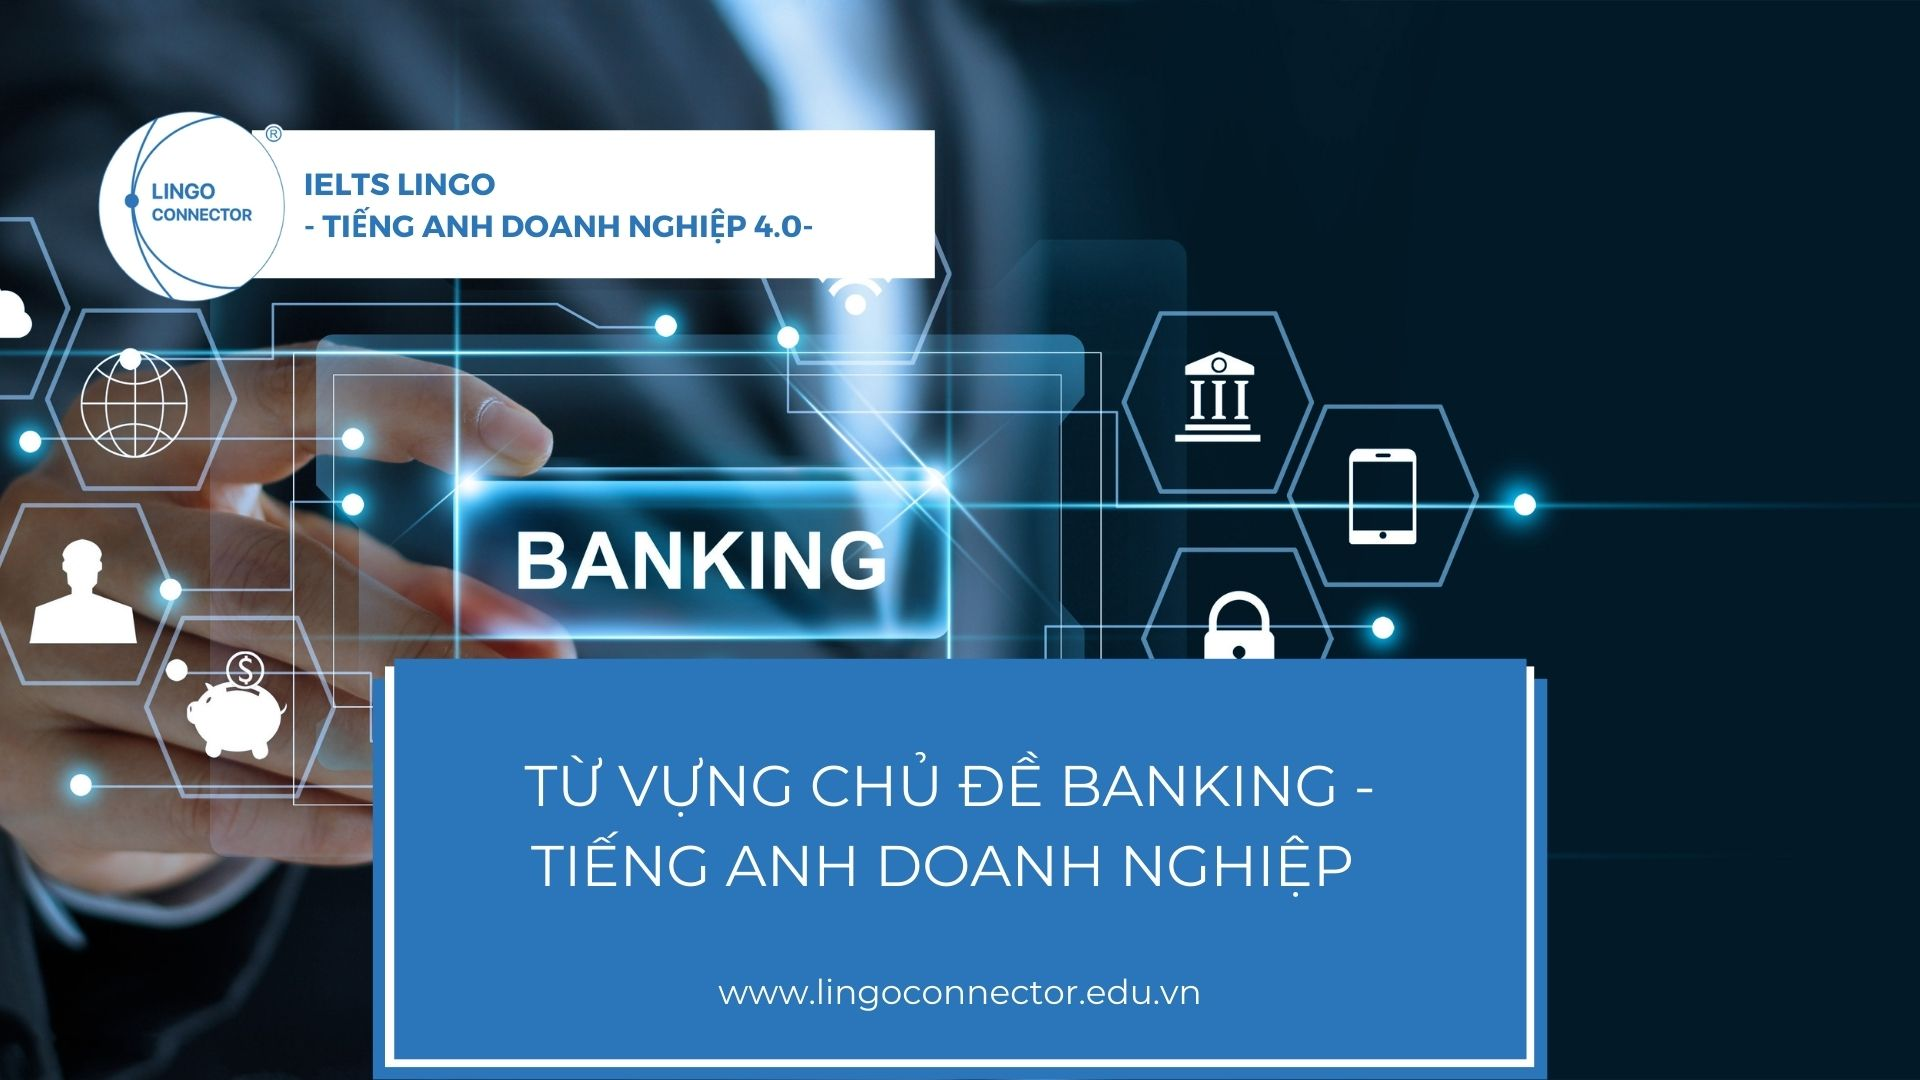 Banking-tieng-anh-doanh-nghiep